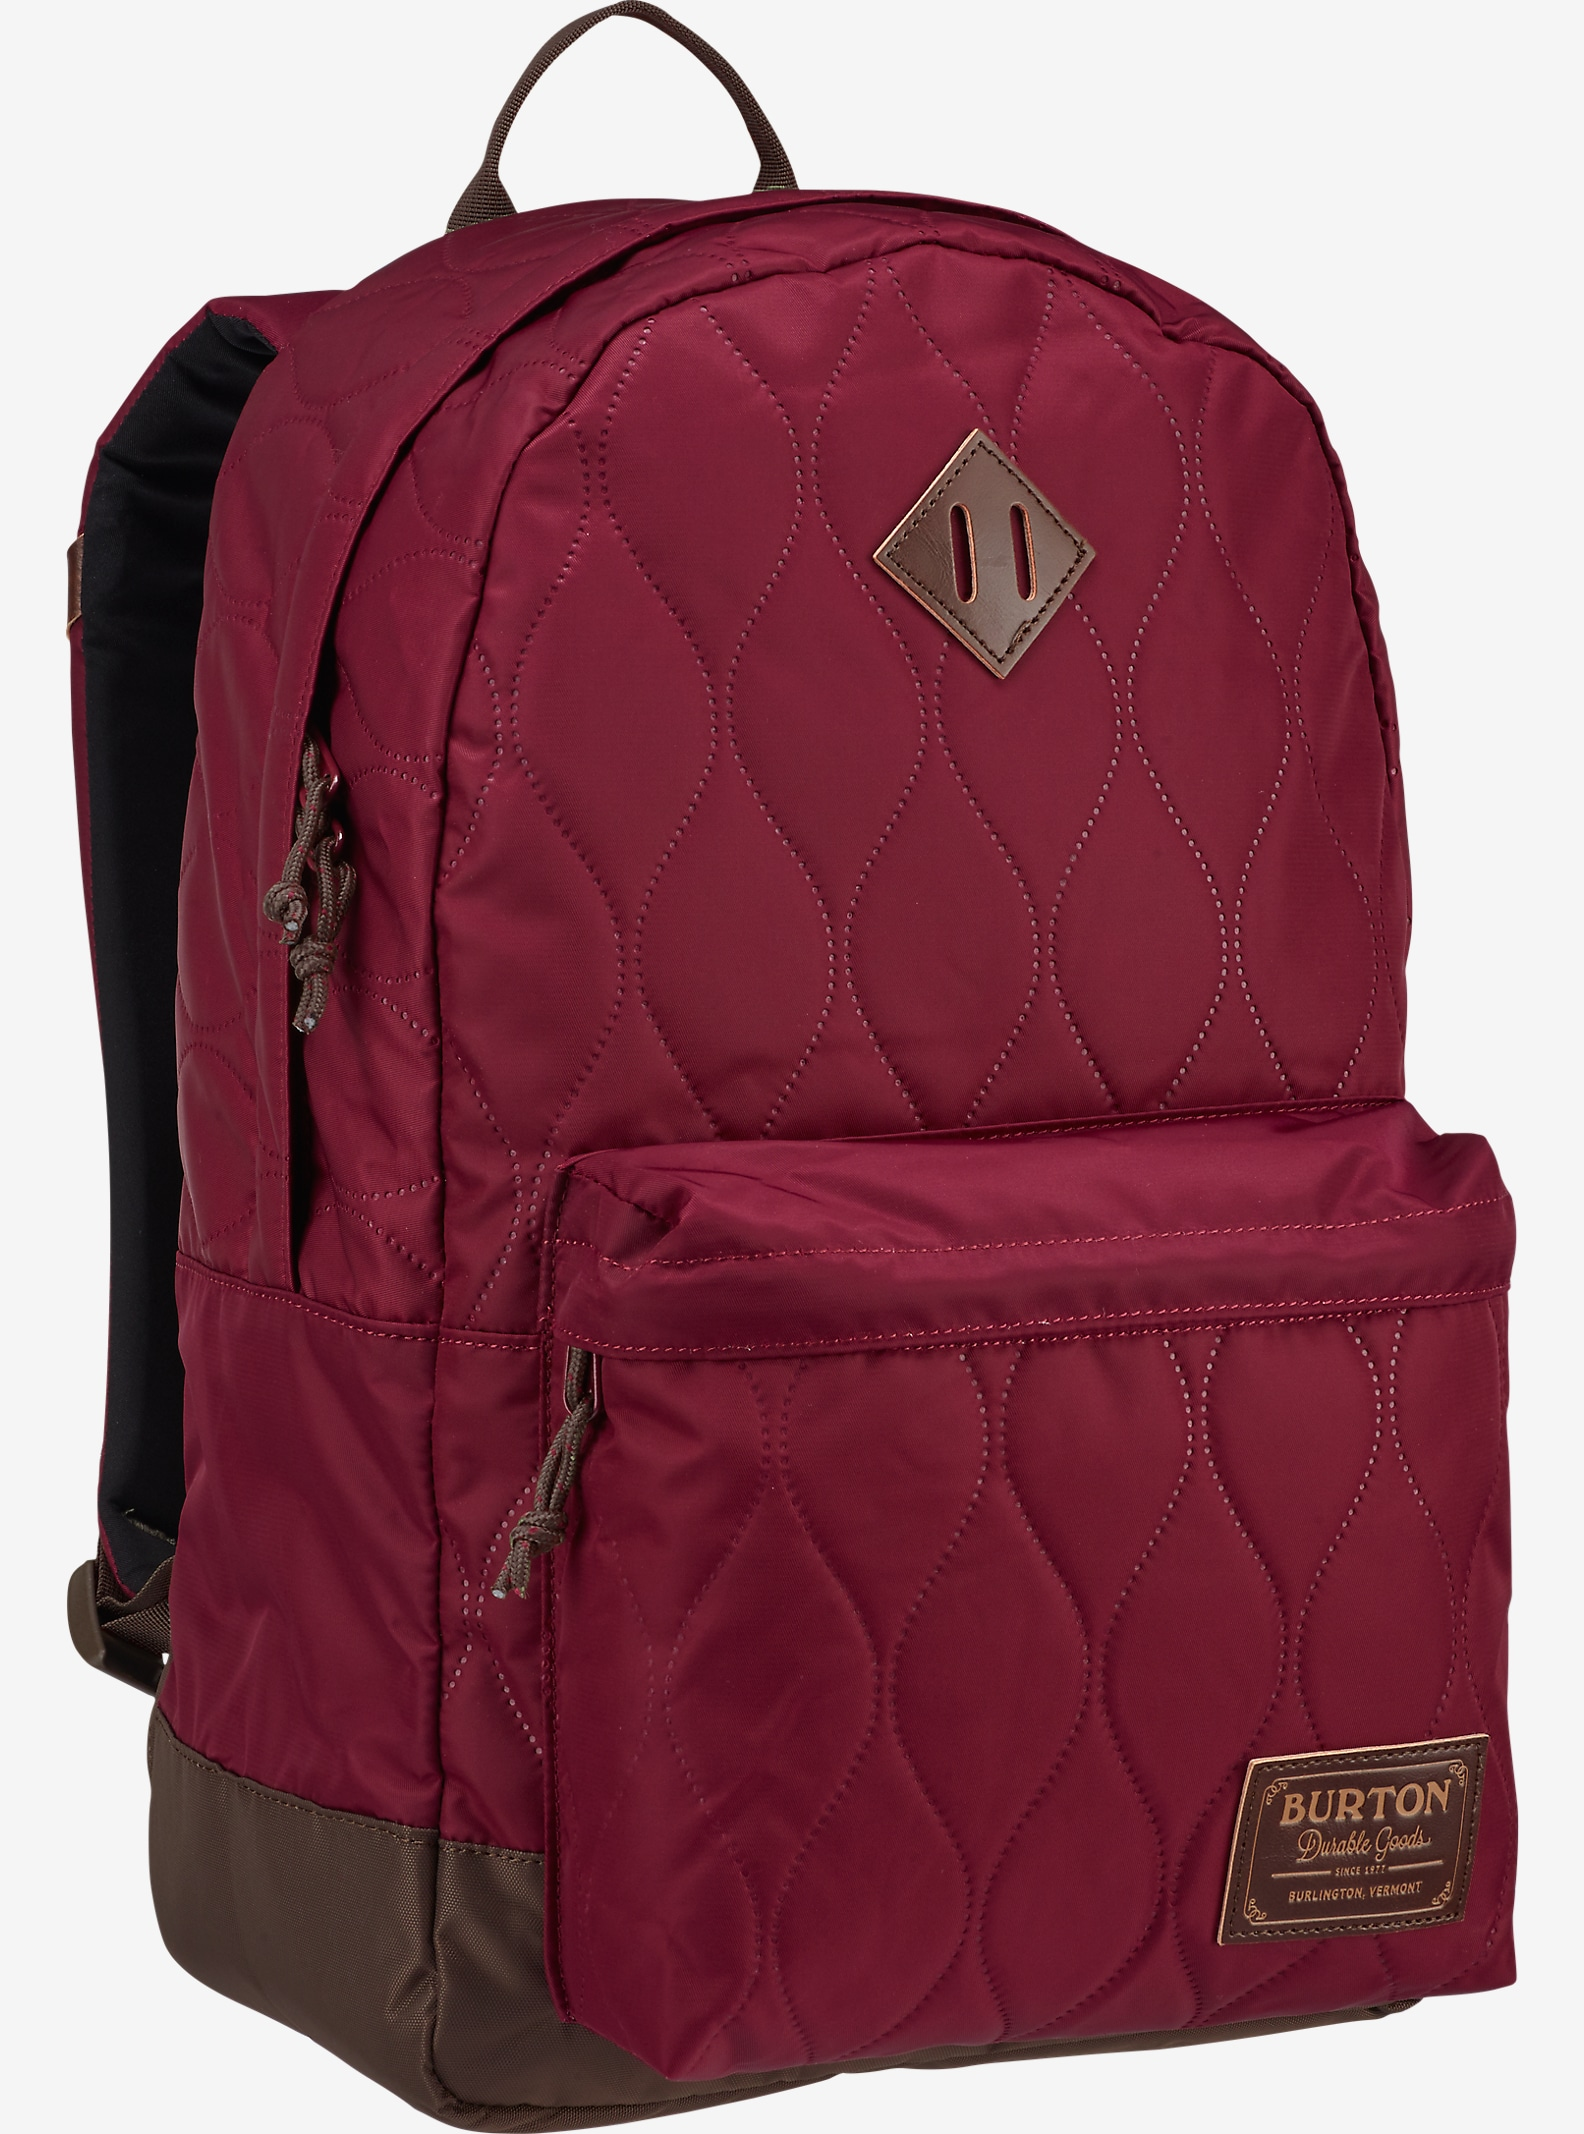 Burton Women's Kettle Backpack shown in Quilted Zinfandel